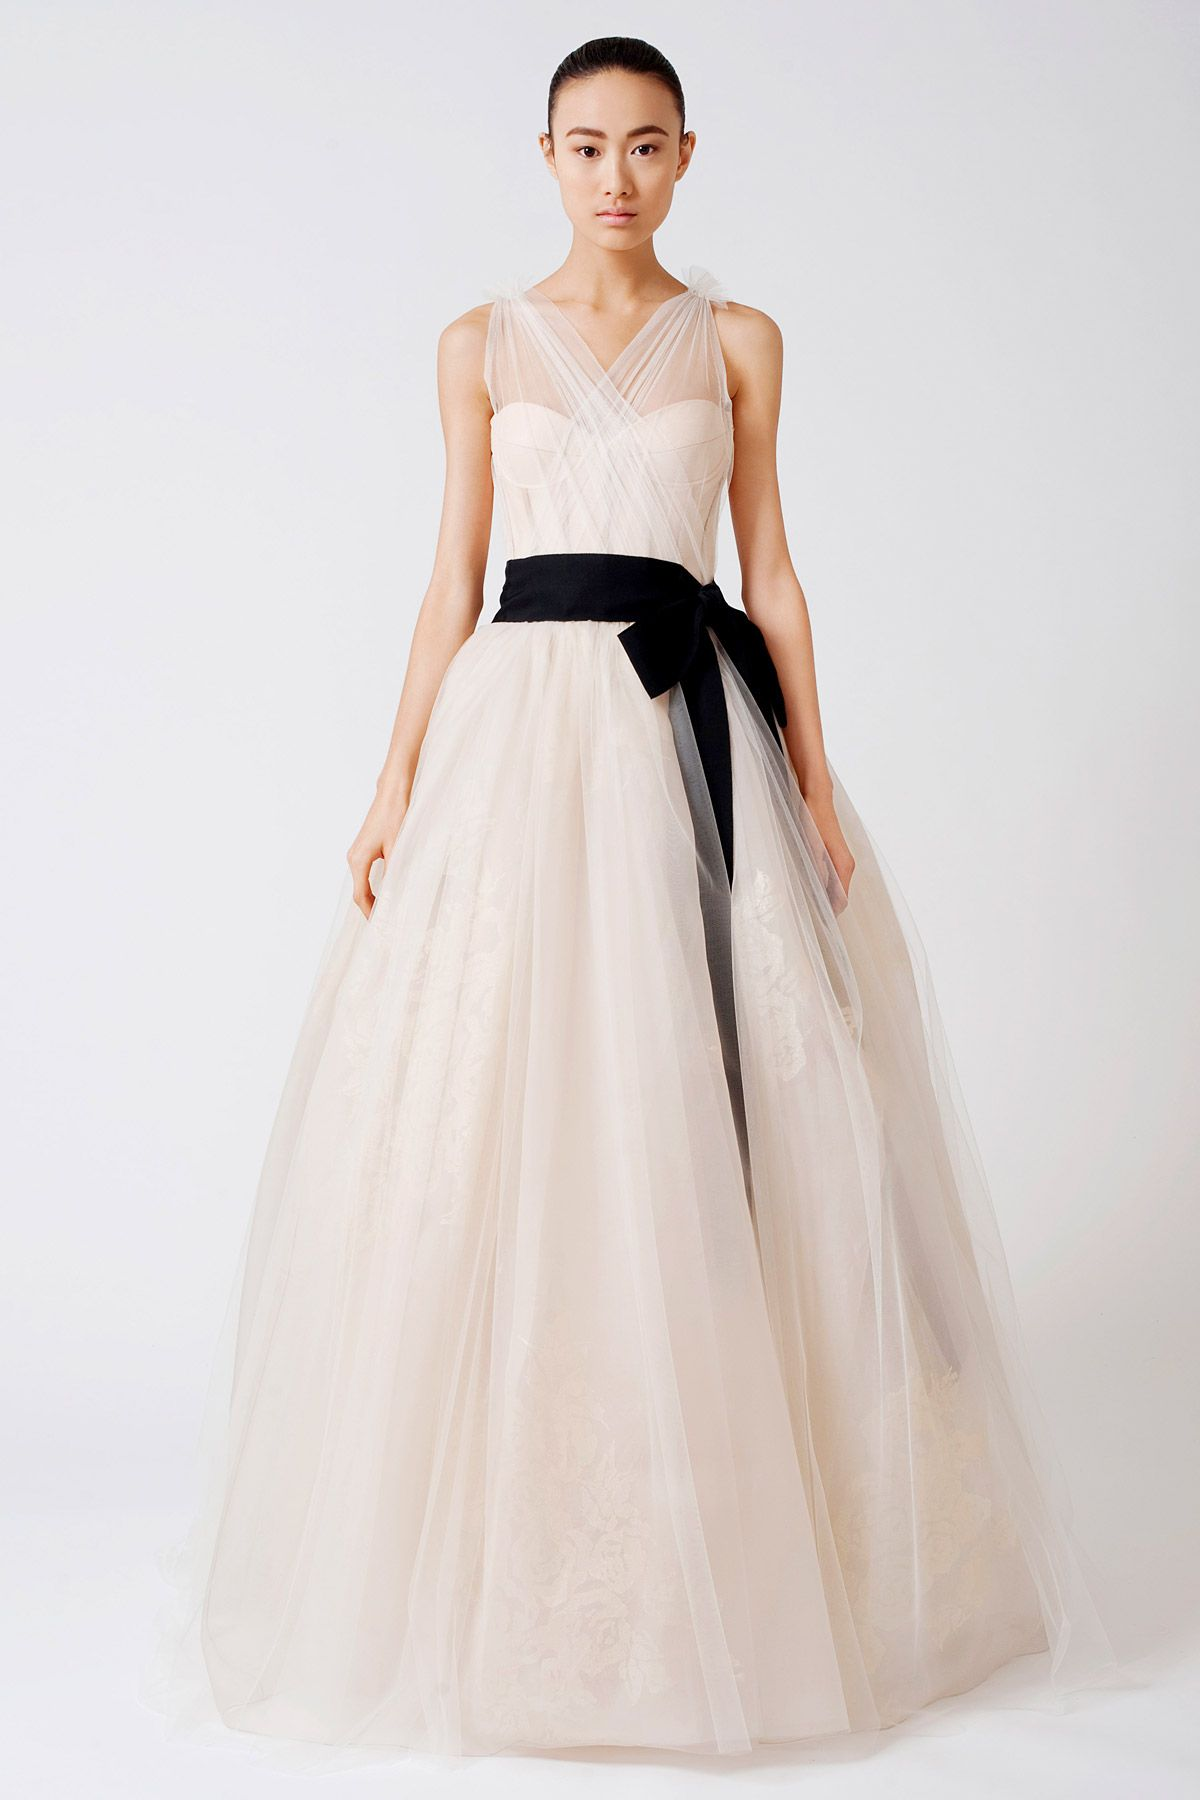 Vera Wang Wedding Gown Emmeline | Wedding Photos - Pictures by ...